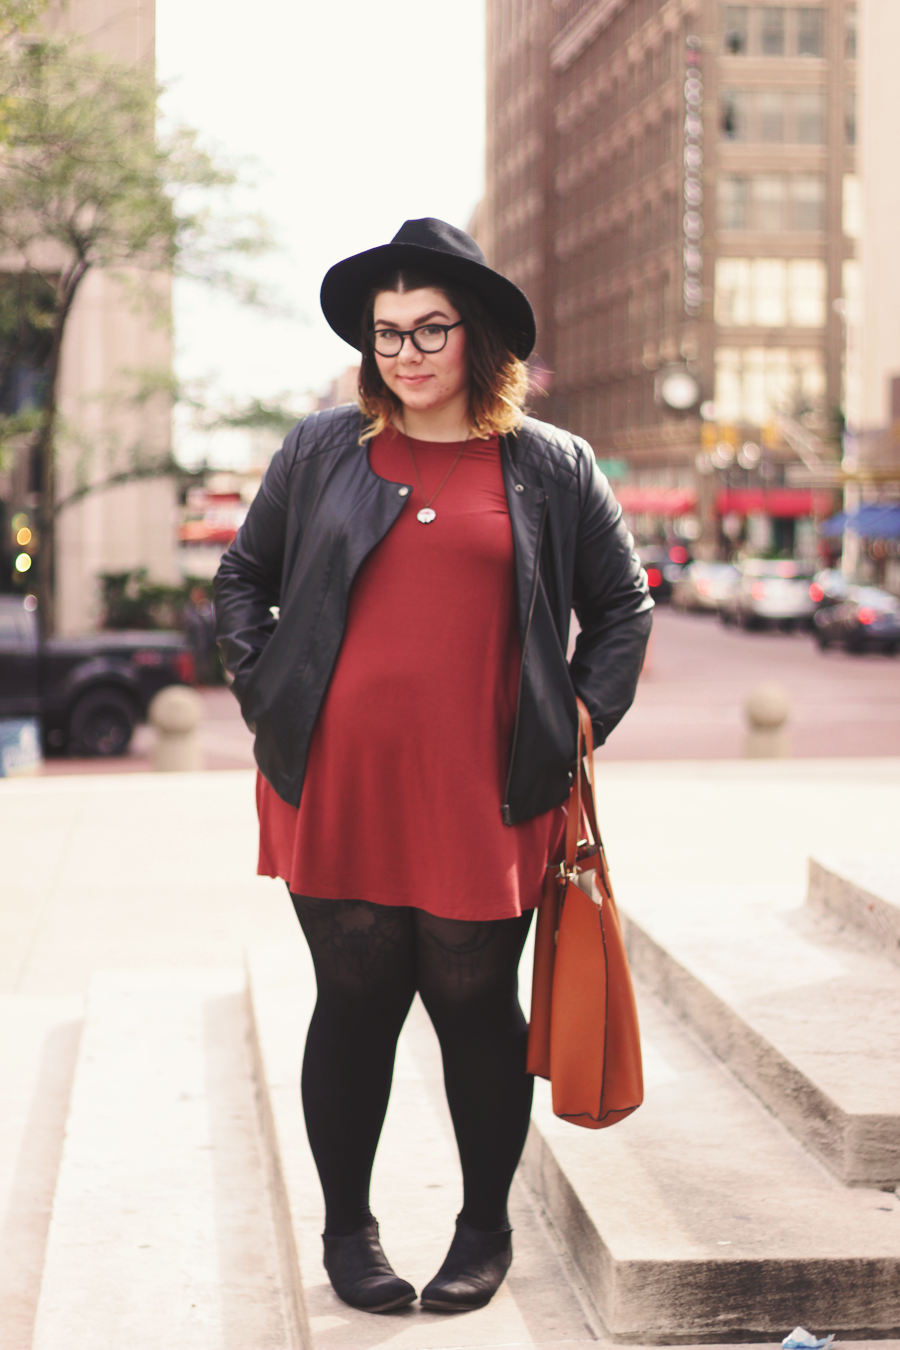 fall fashion, fall style, city style, outfit